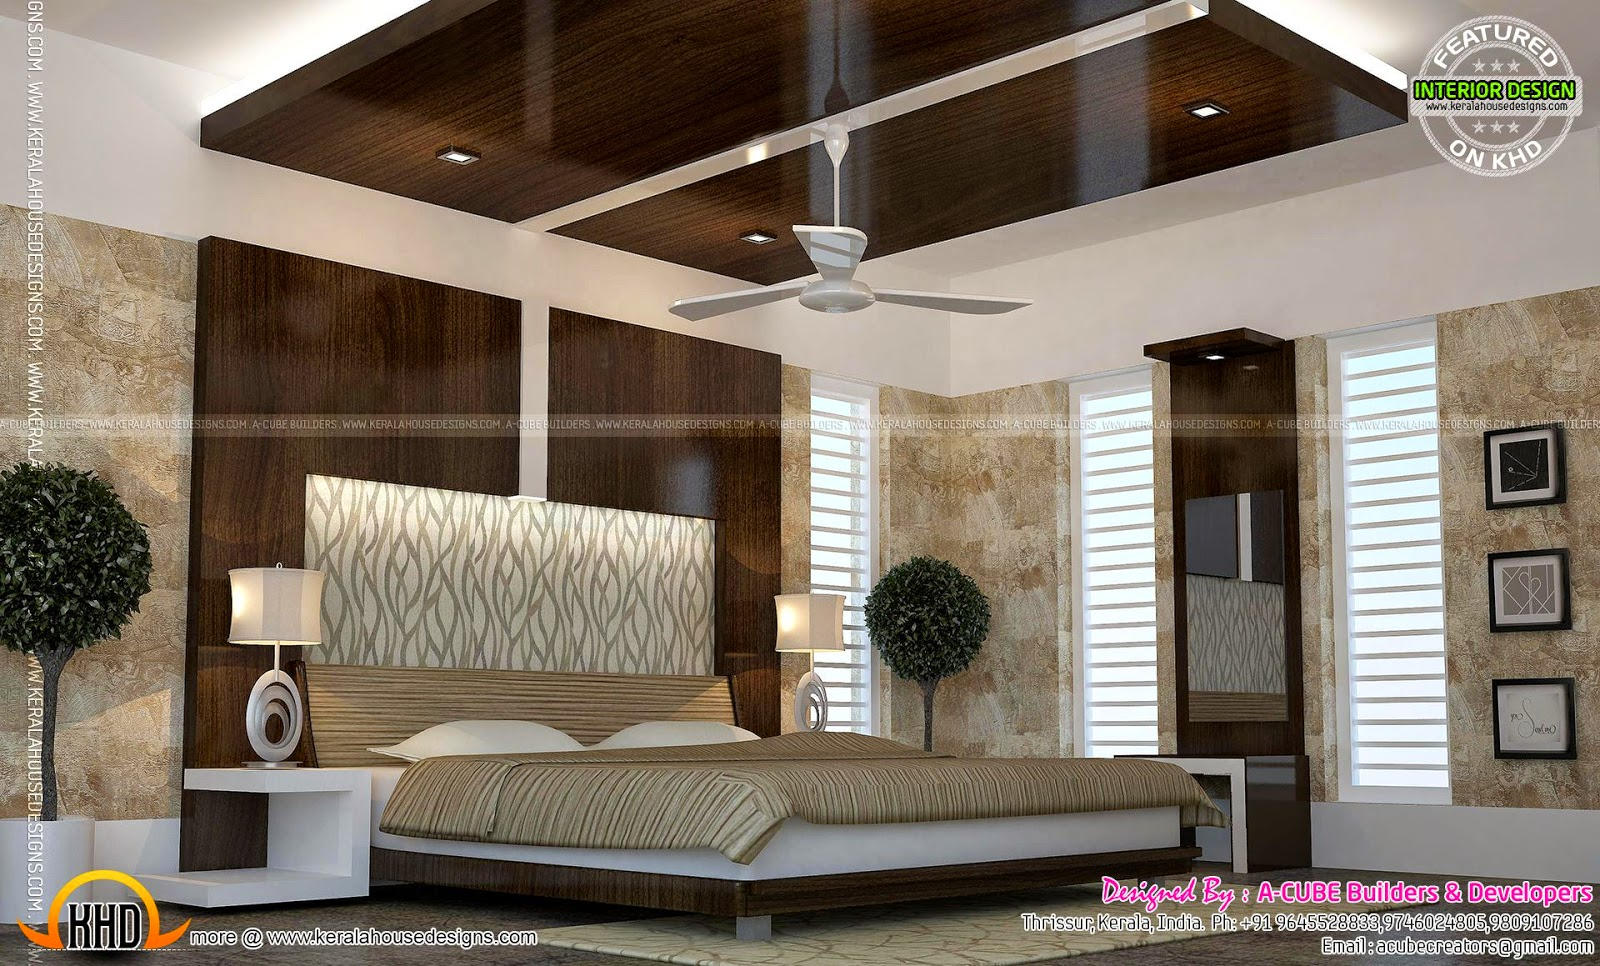 Kerala interior design ideas kerala home design and floor plans - Room house design ...